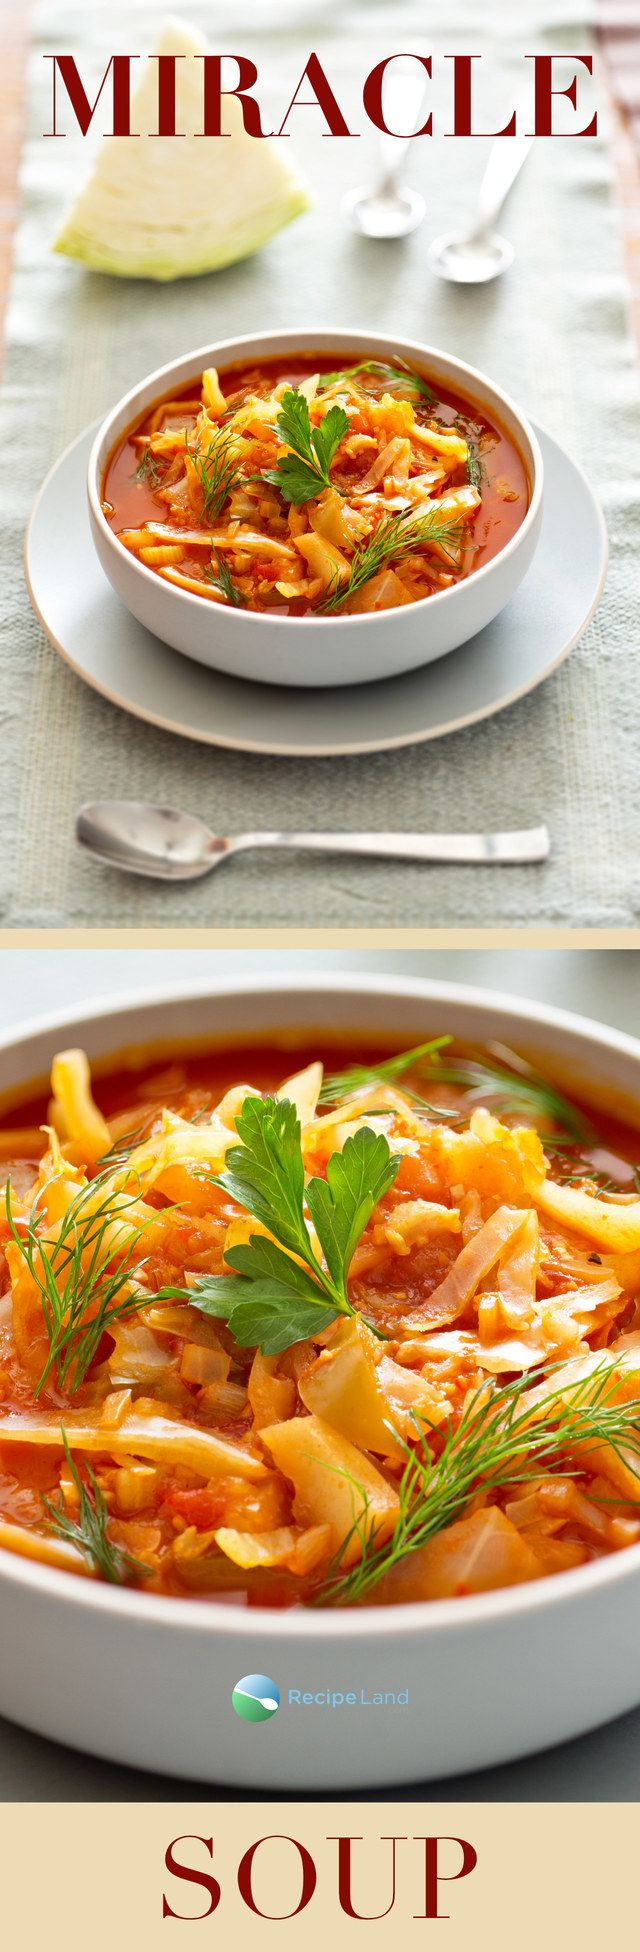 AKA The Dolly Parton diet, or The Cabbage Soup diet. An easy to make low-calorie, low-fat soup.